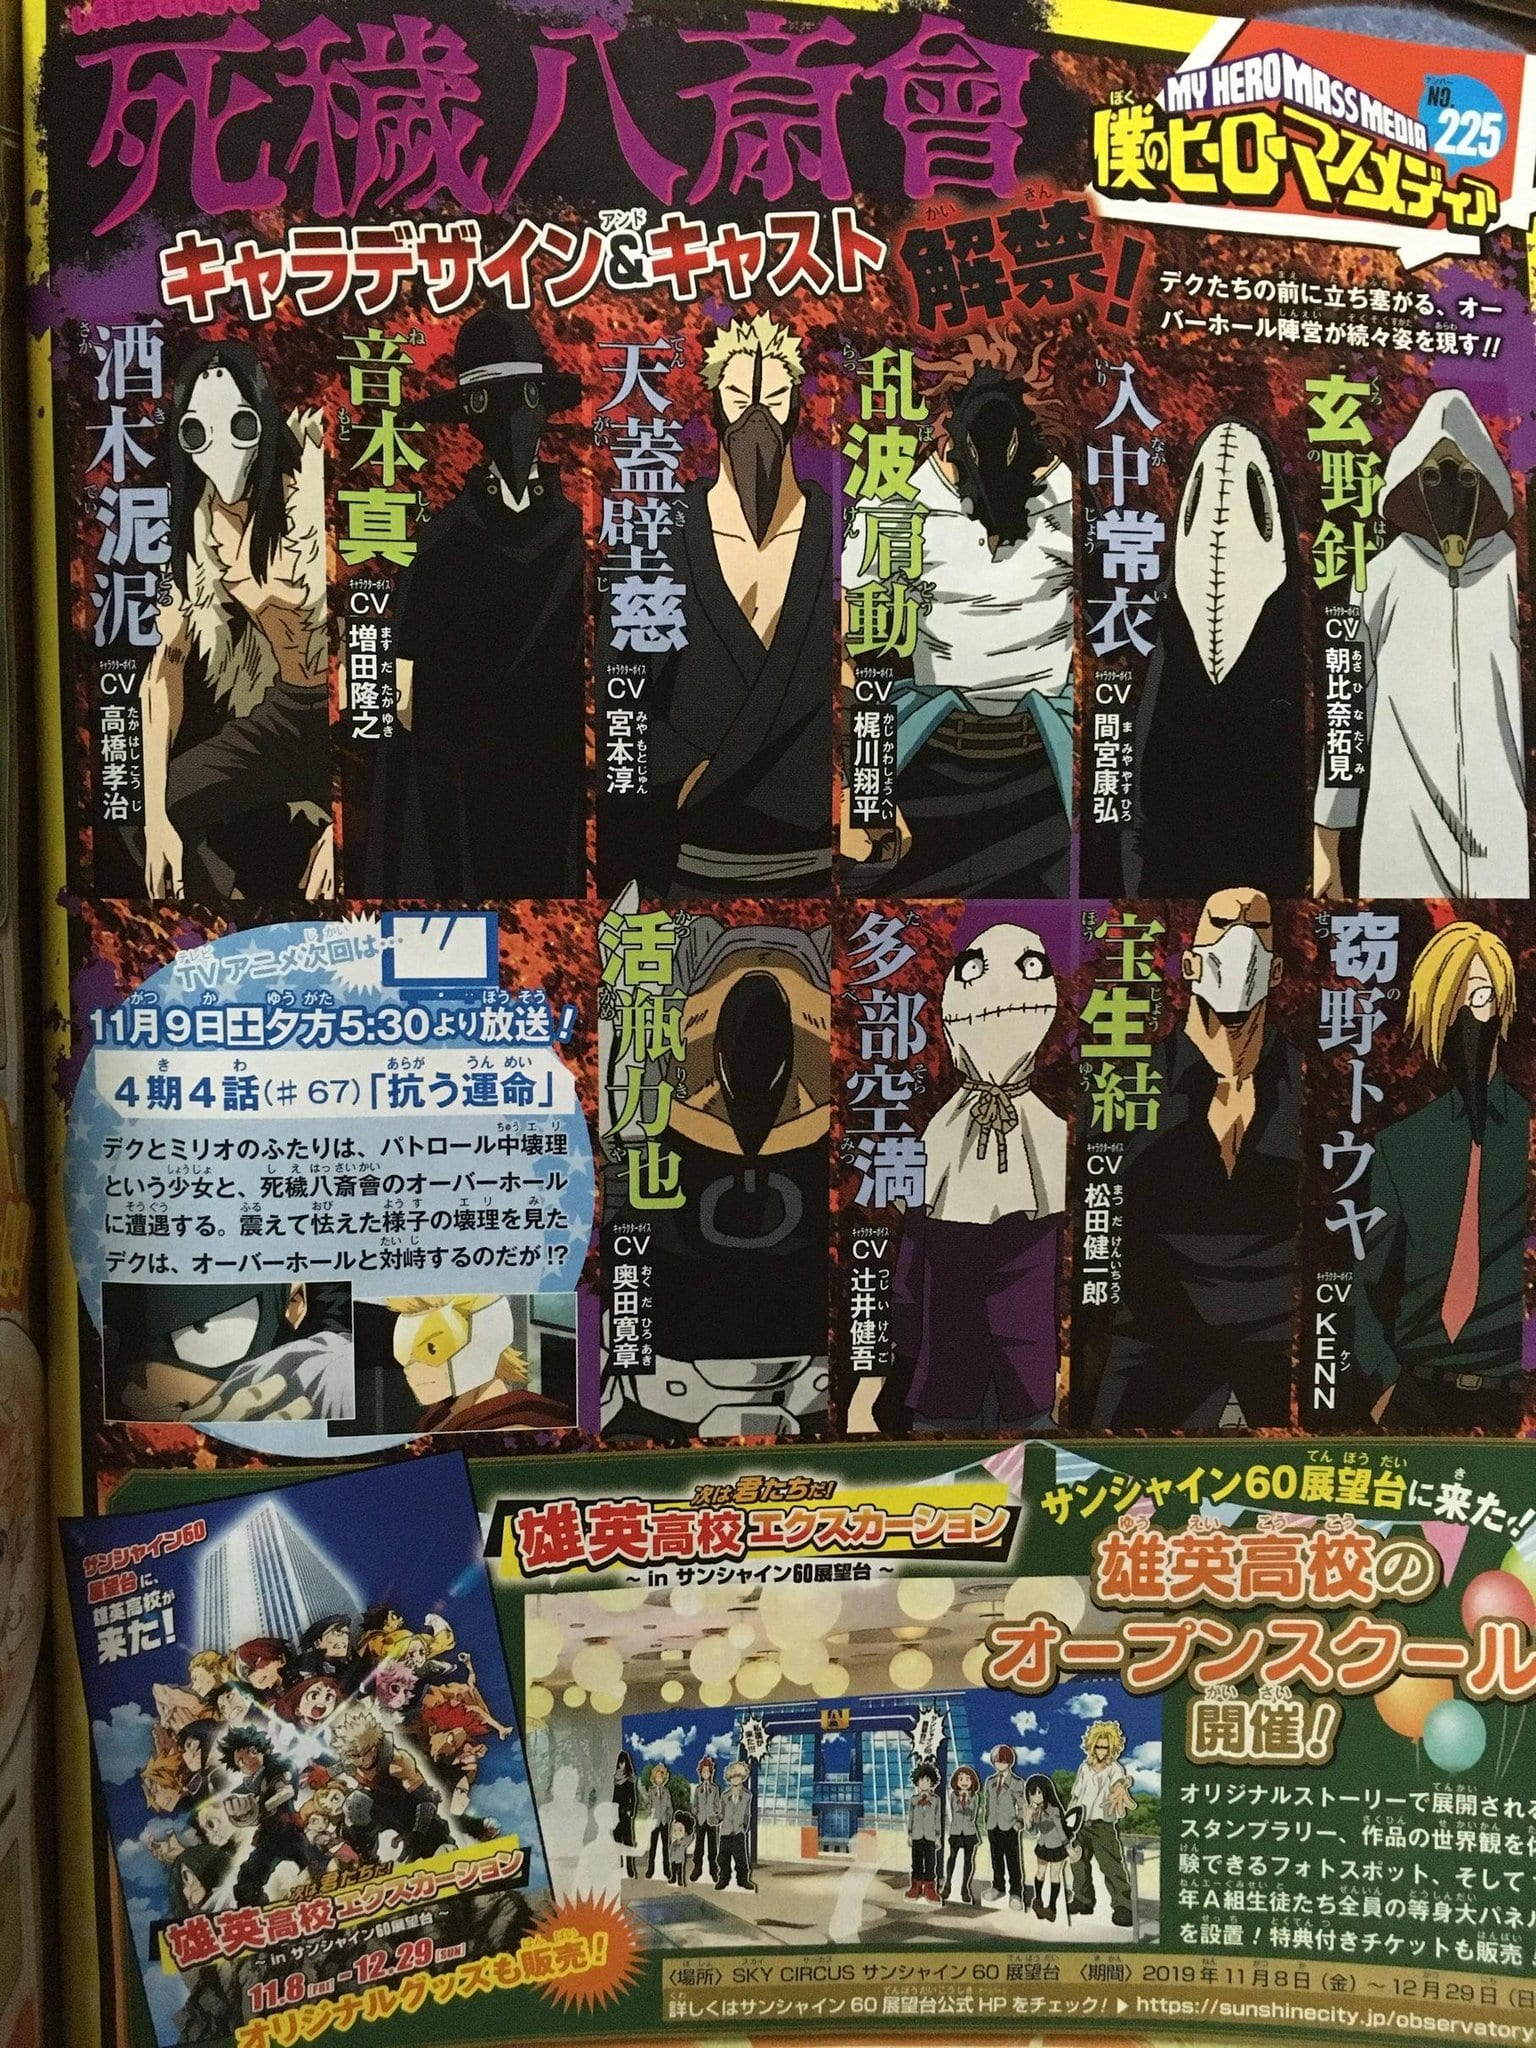 My Hero Academia Reveals Shie Hassaikai Character Designs And Cast For Season 4 Otakukart News (he is referred to as 'shōnen' in the. my hero academia reveals shie hassaikai